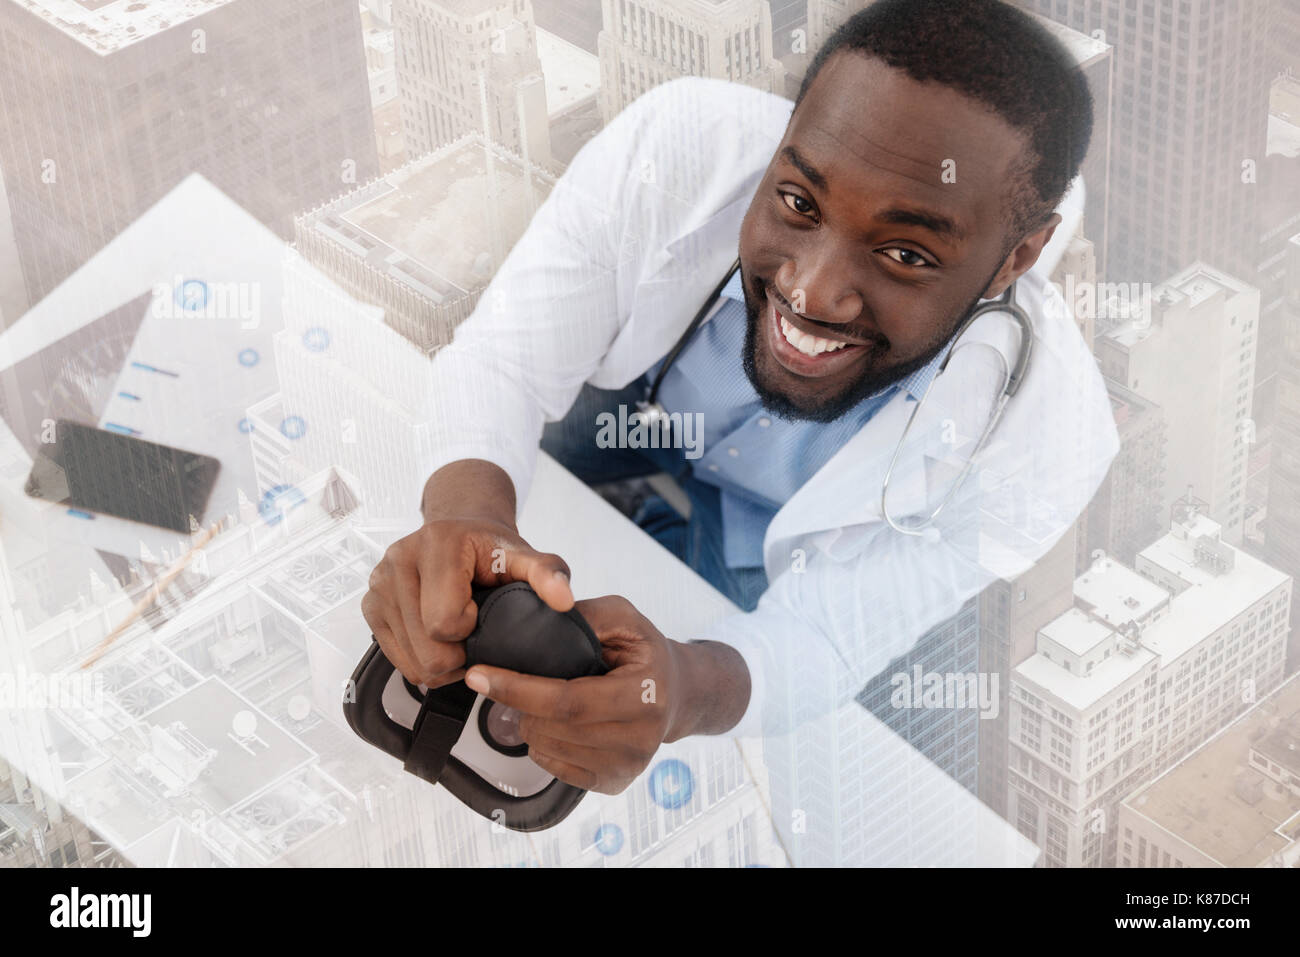 Professional chemist looking at you with delight - Stock Image